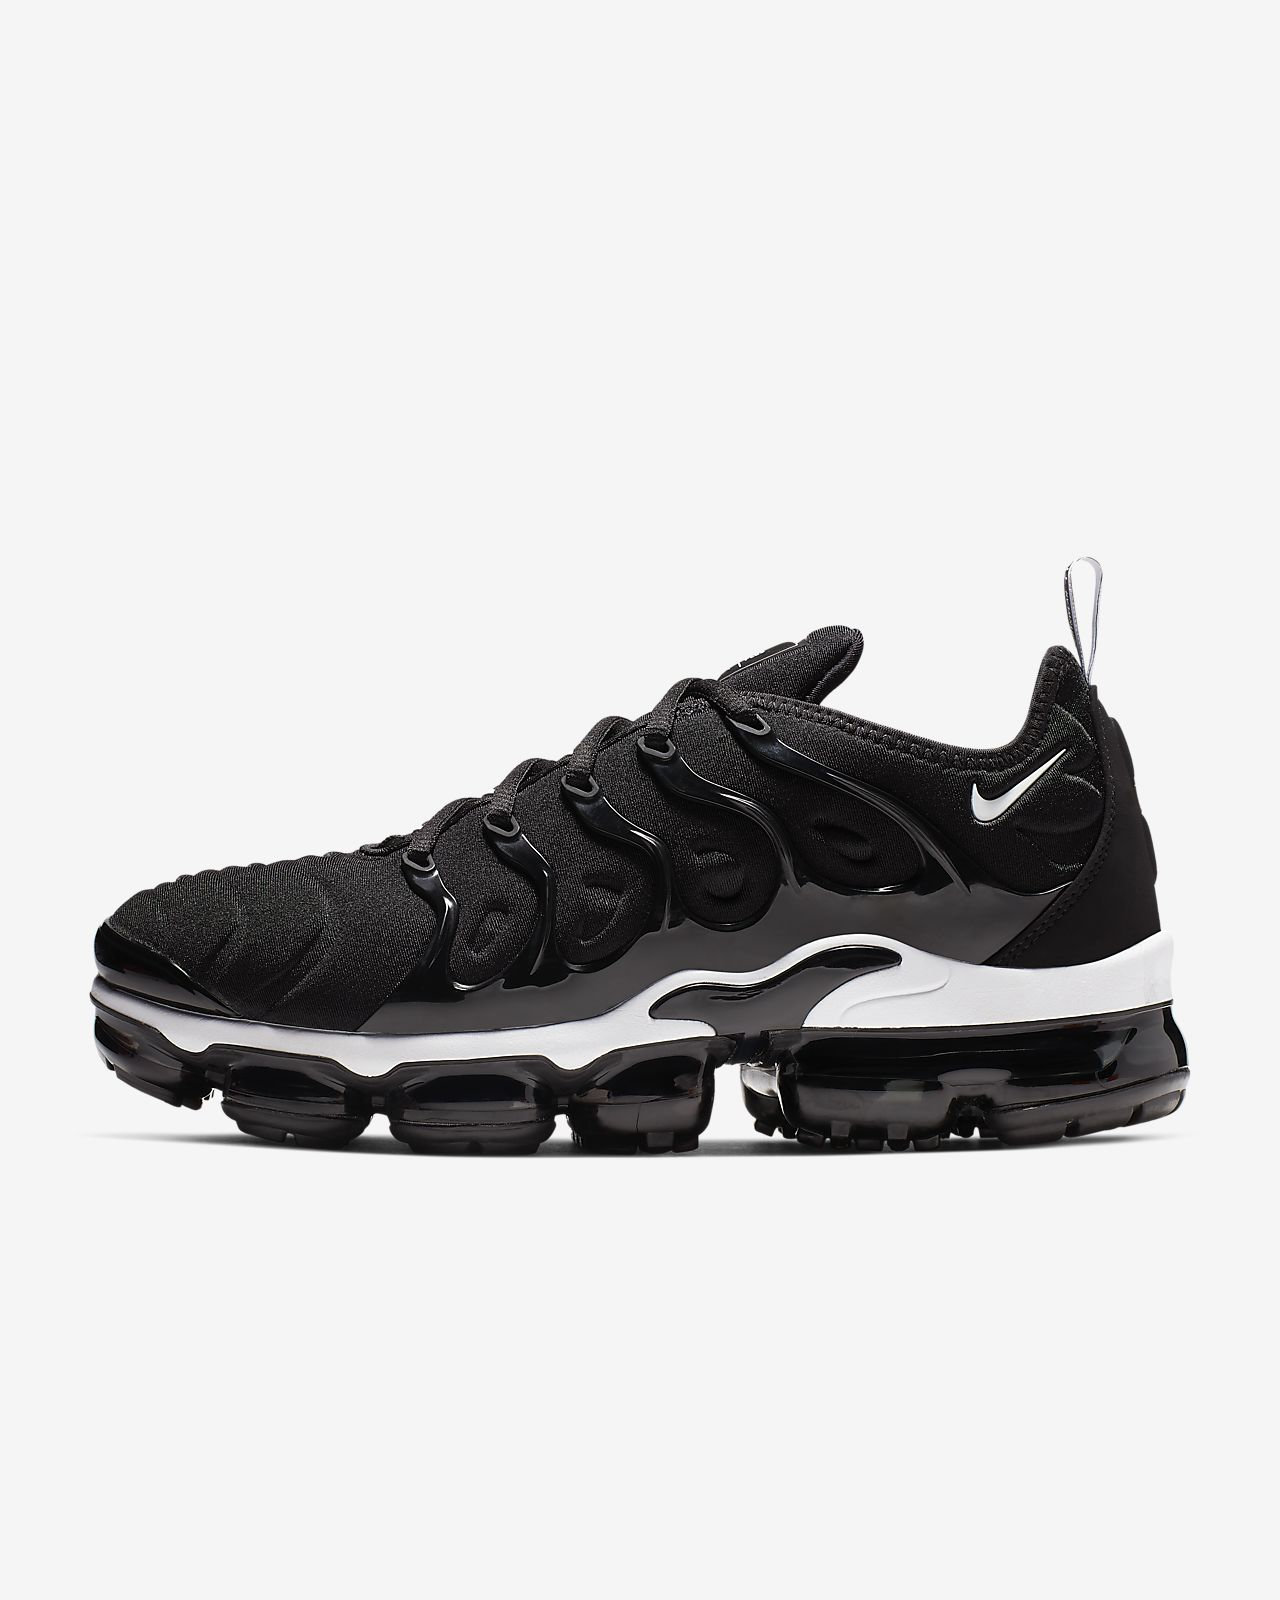 finest selection d85af 20316 ... Calzado para hombre Nike Air VaporMax Plus